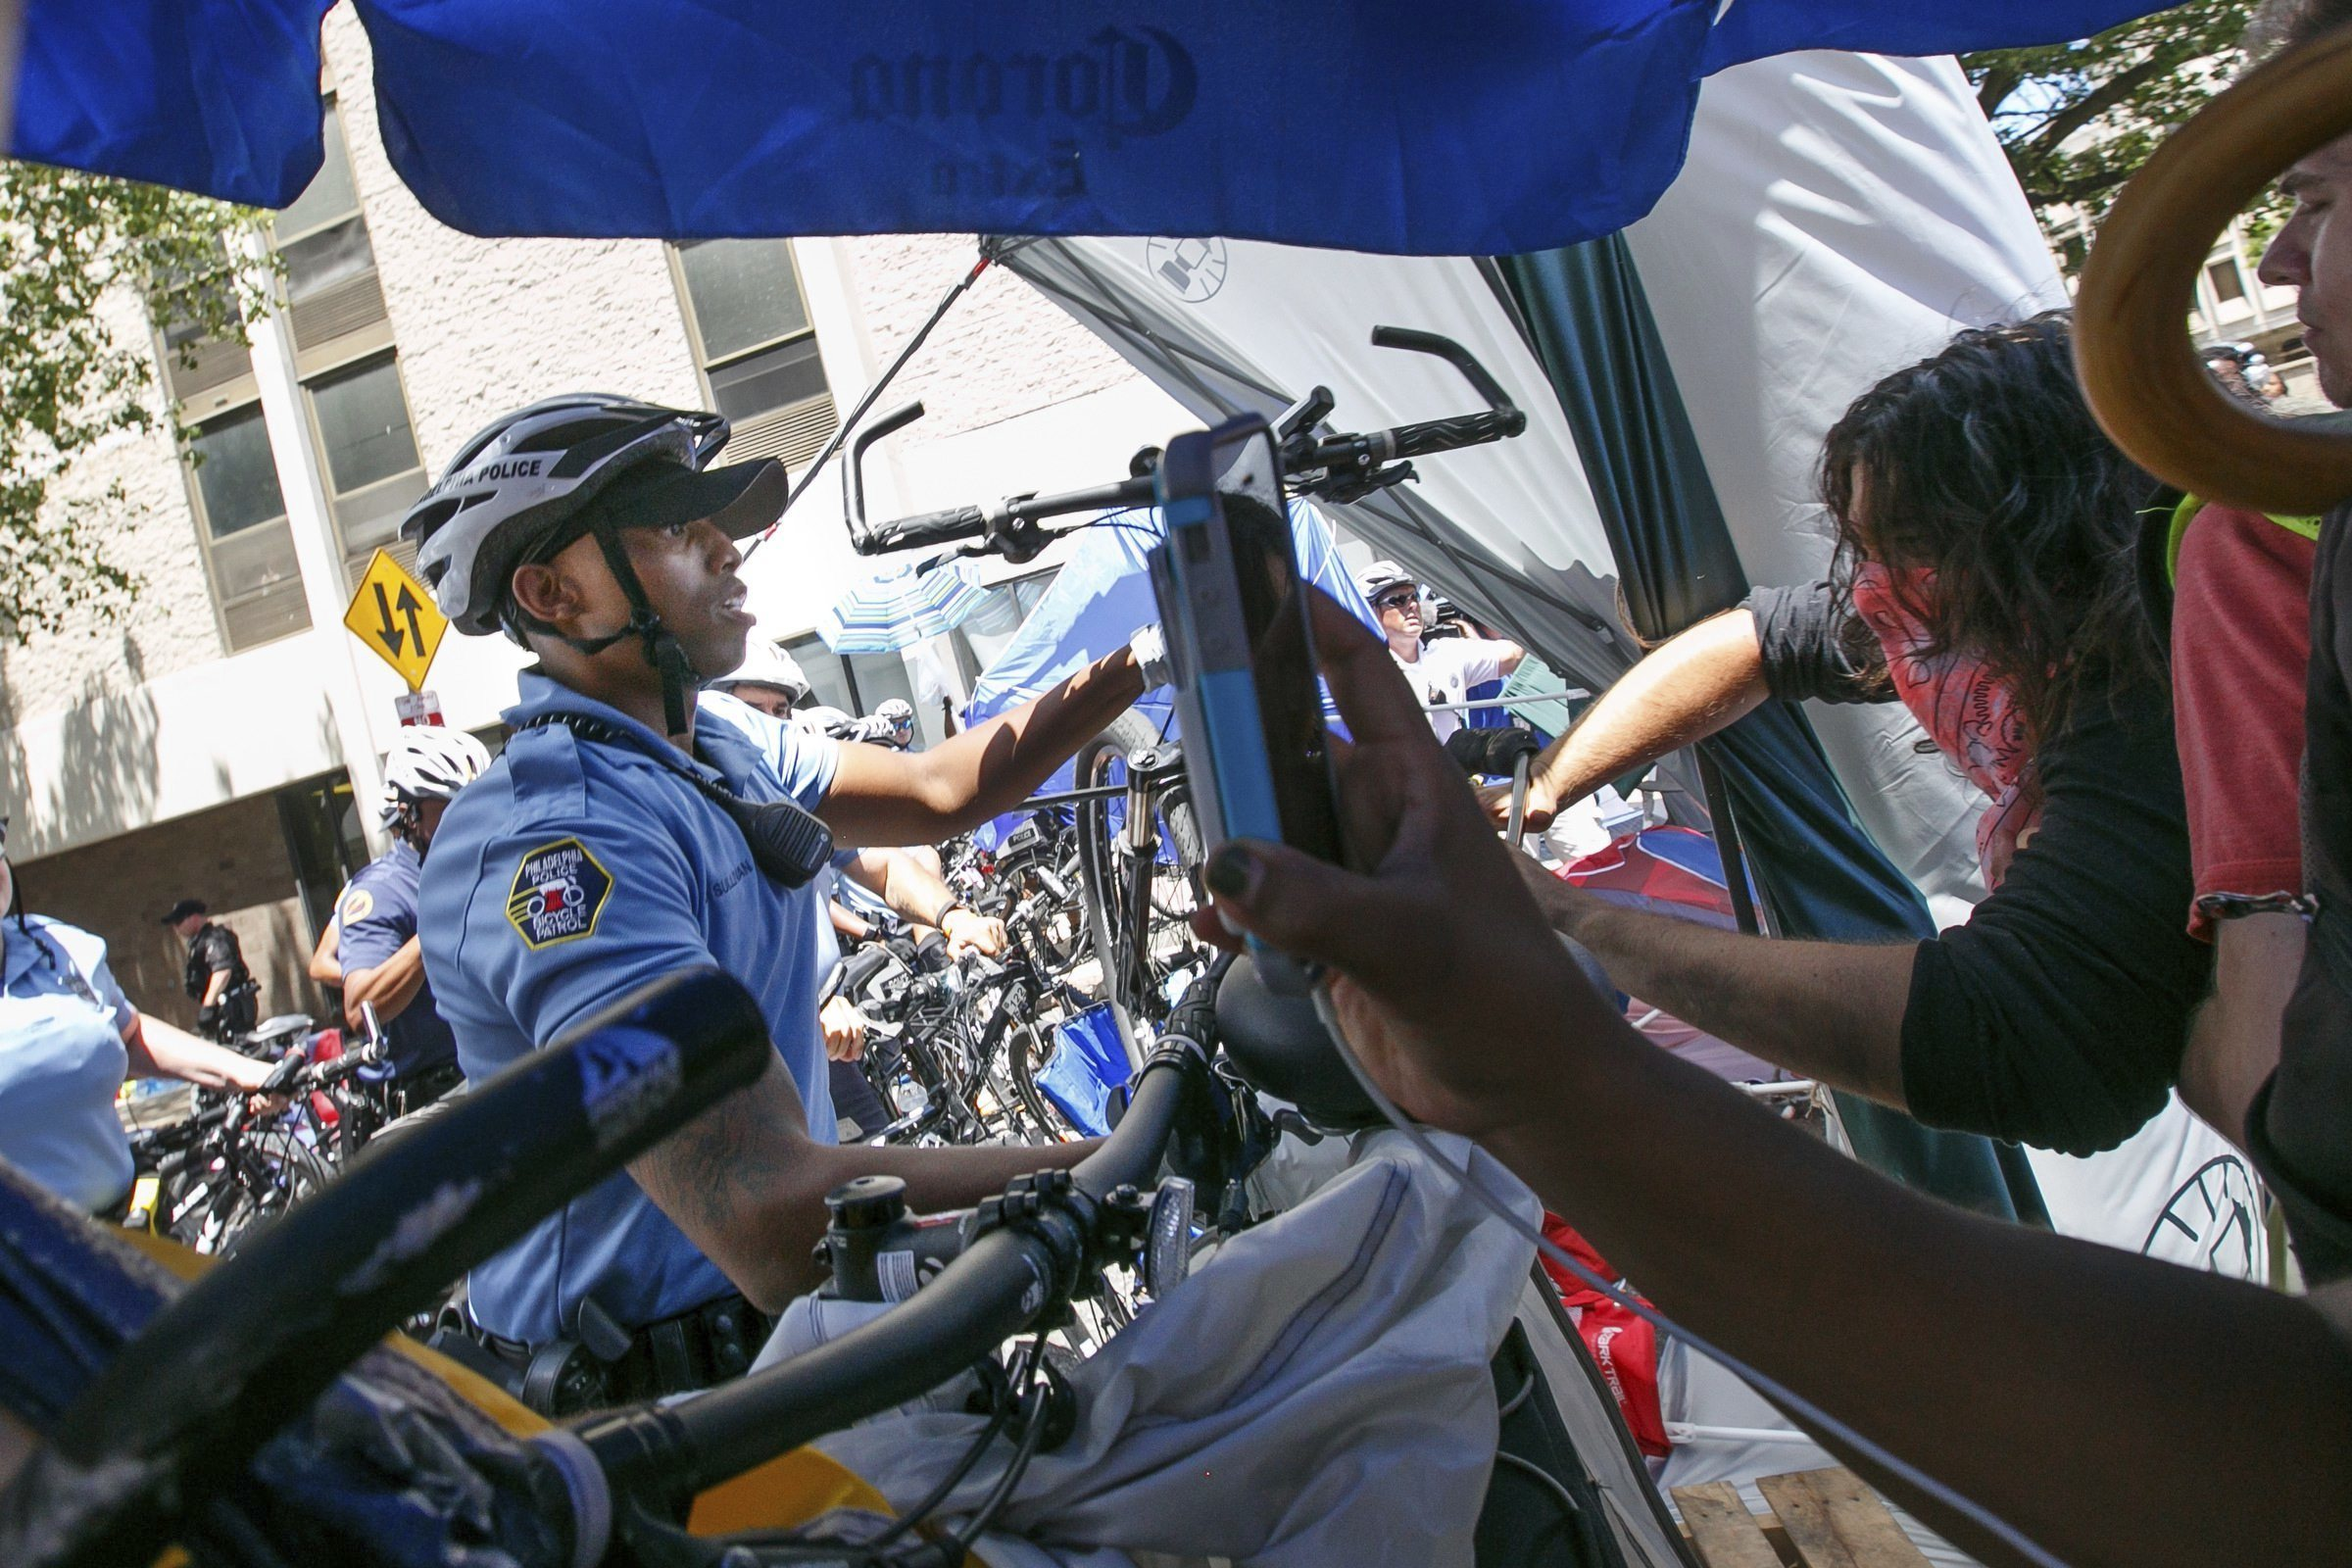 Police confront demonstrators outside the federal Immigration and Customs Enforcement agency on Thursday, July 5, 2018 in Philadelphia. Several protesters were arrested.